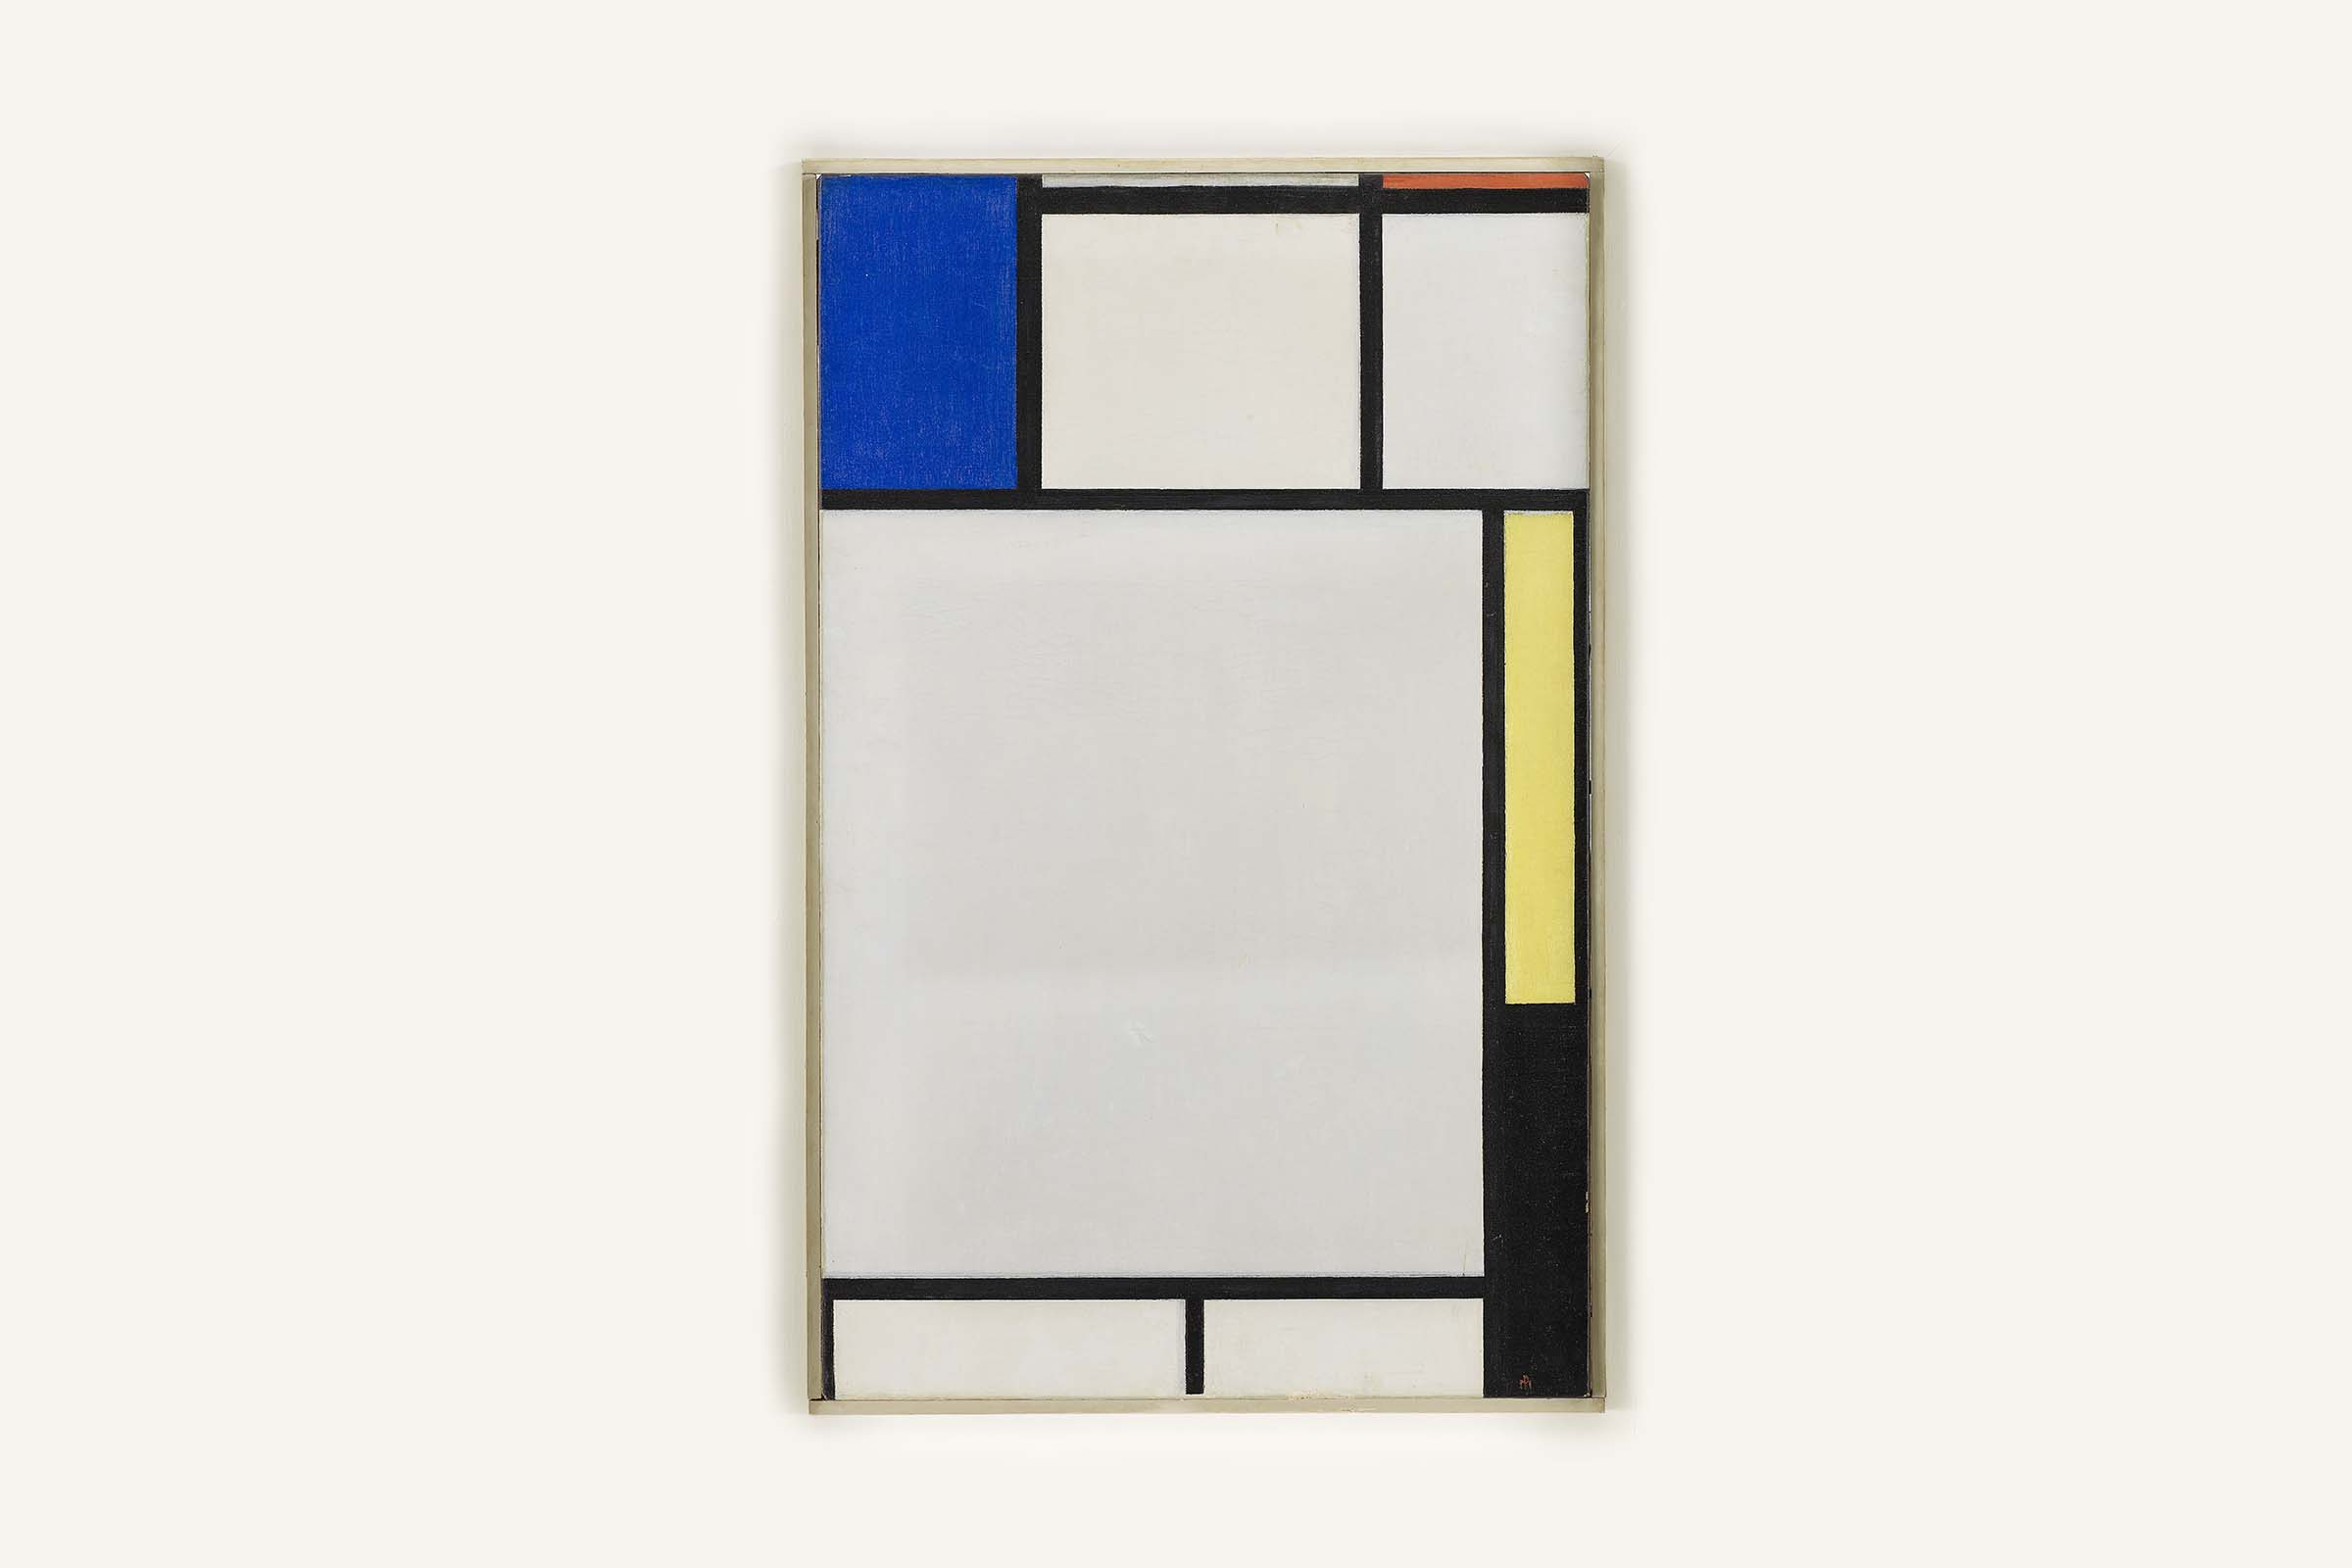 Composition, Piet Mondrian